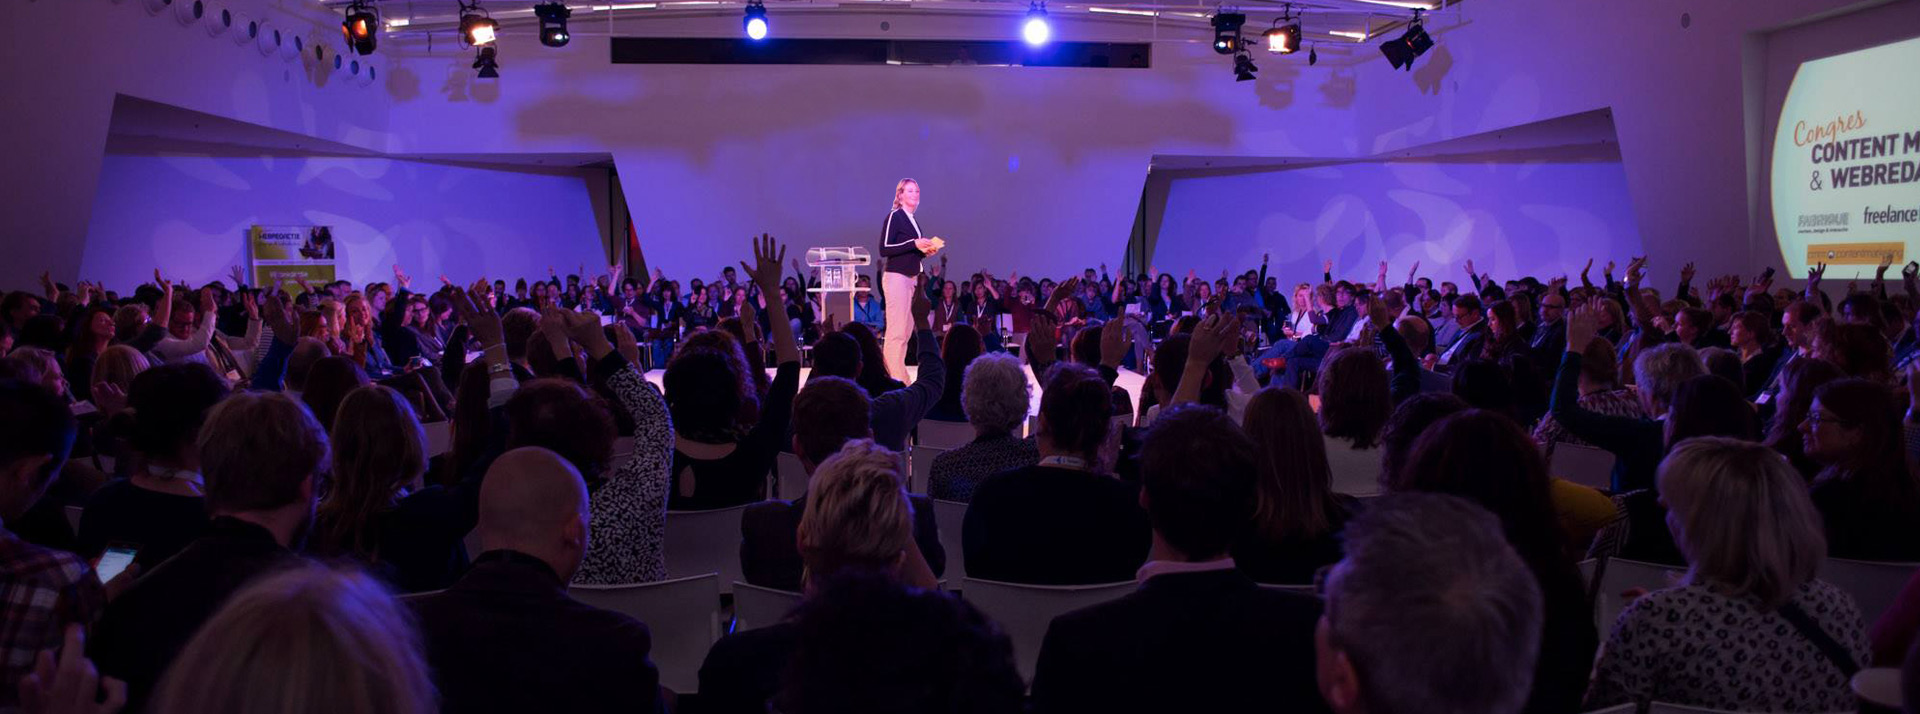 Congres Content Marketing & Webredactie 2015